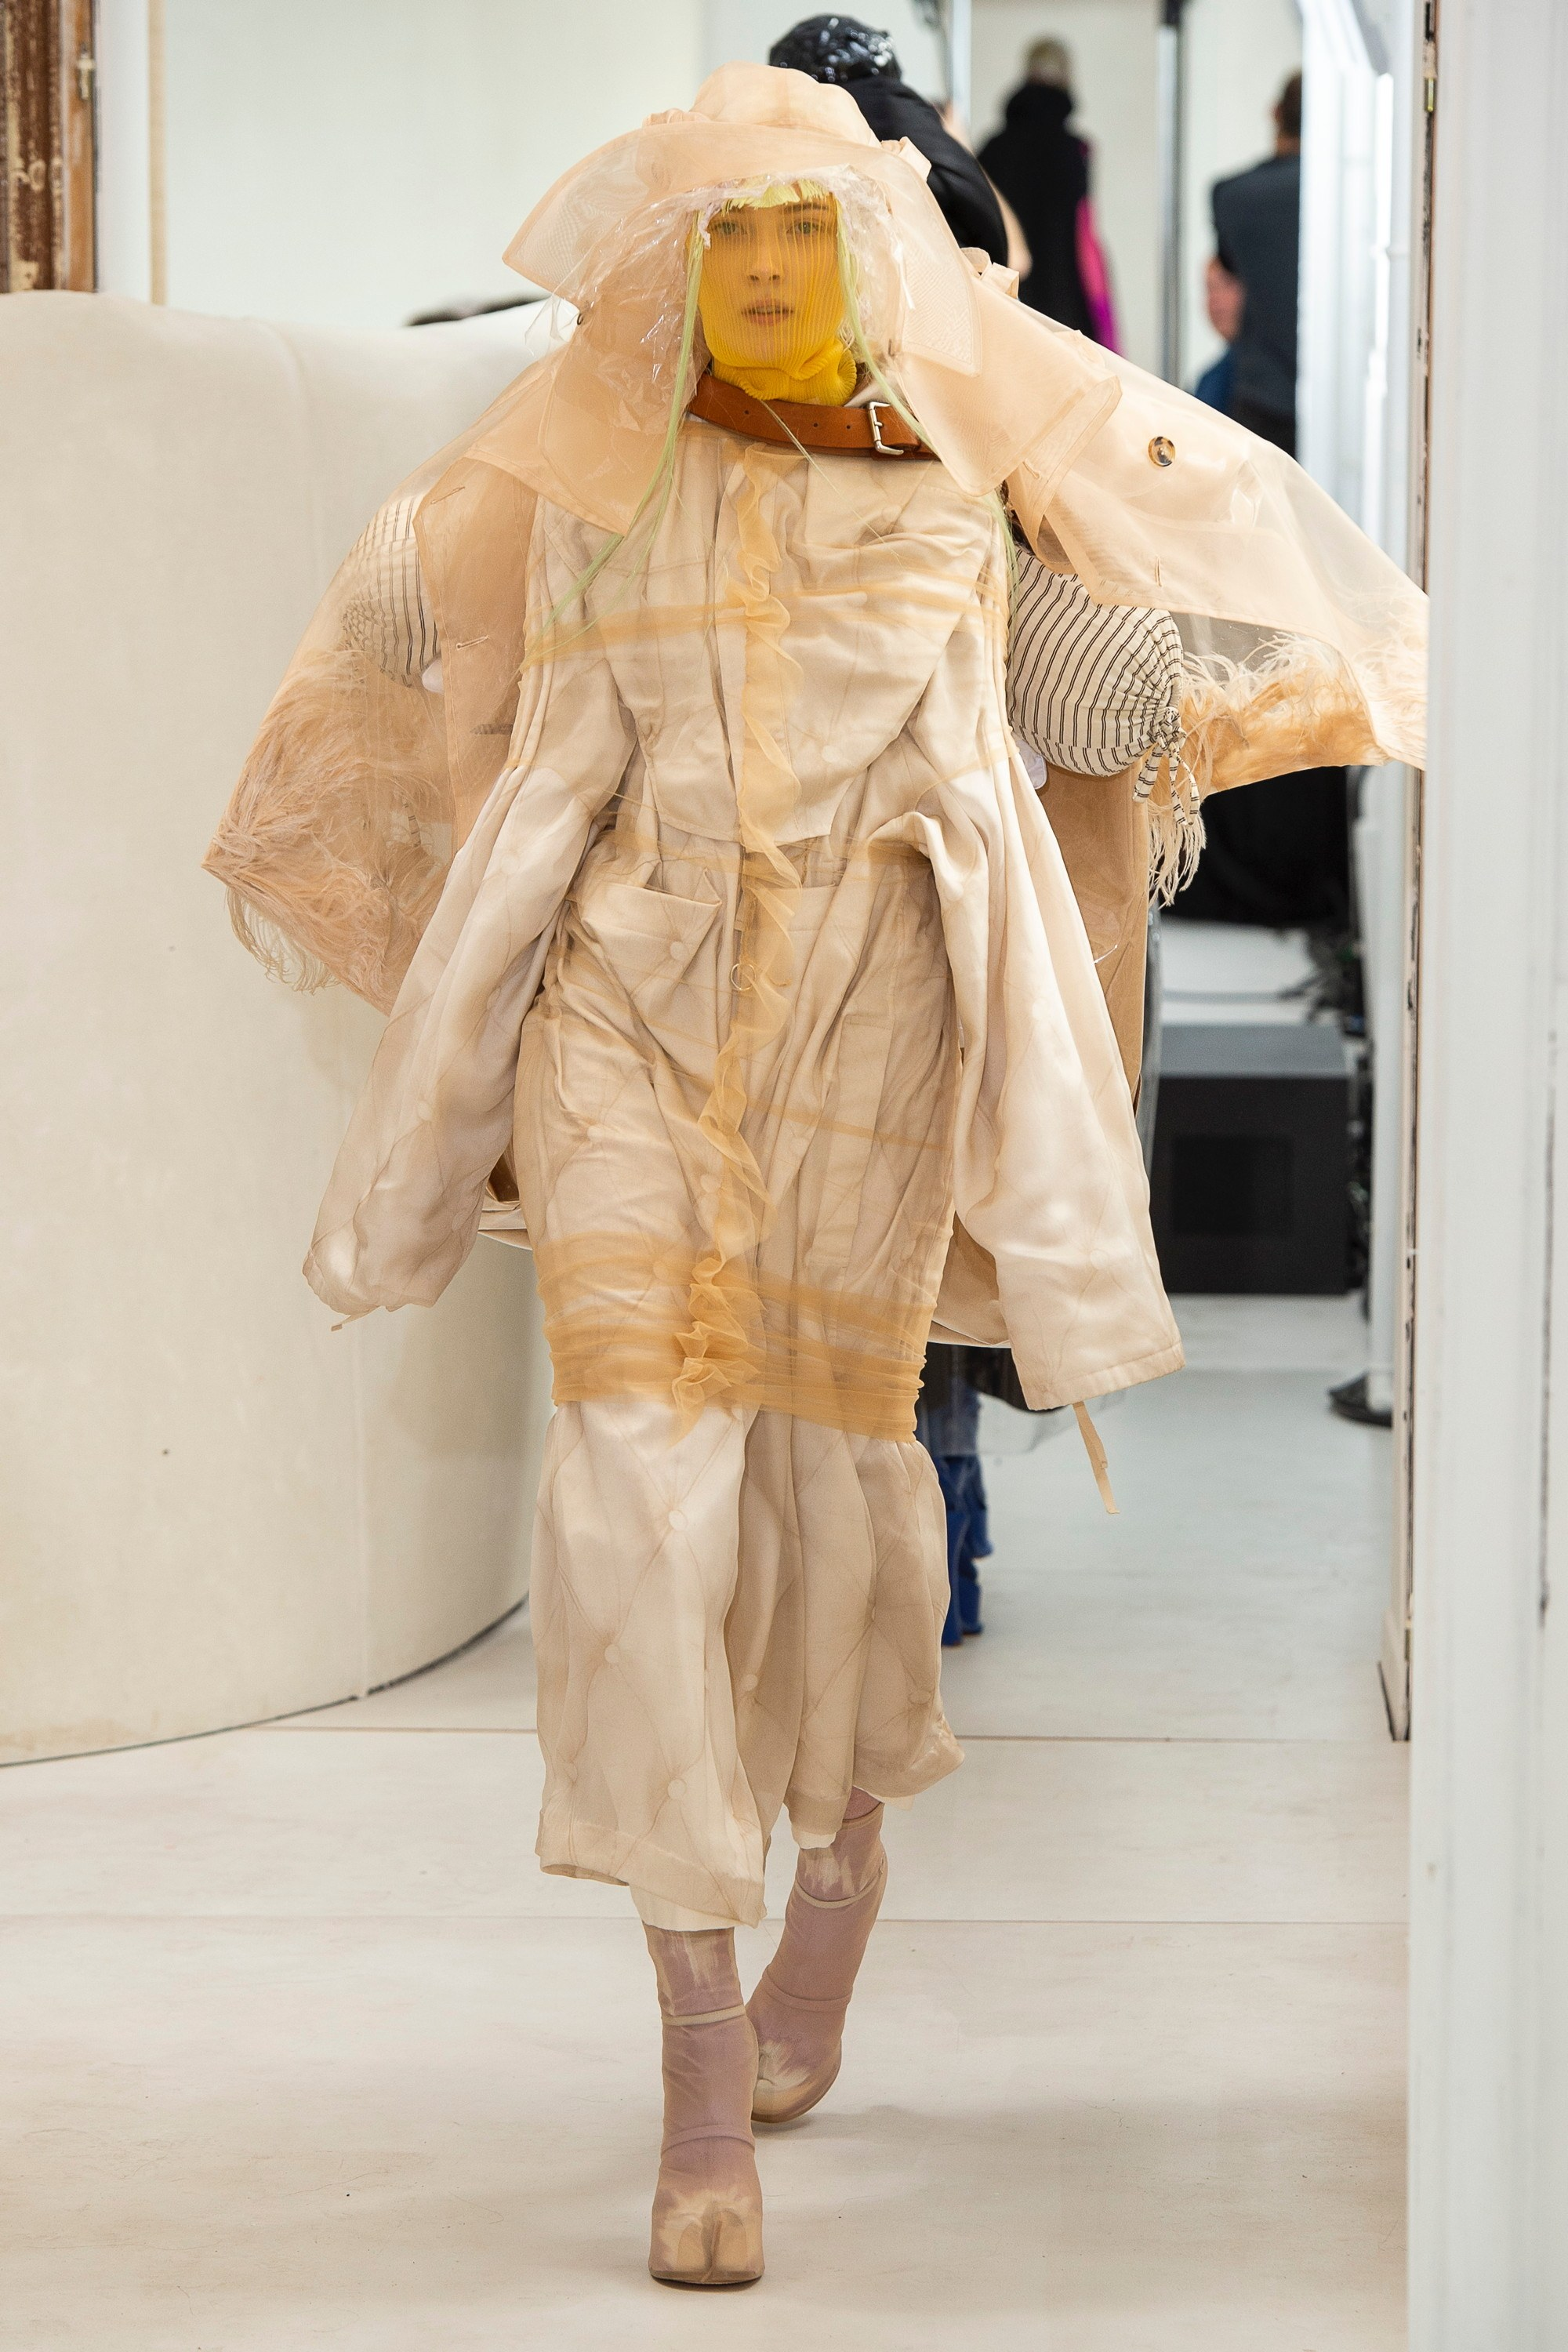 MM6 Maison Margiela Spring 2017 Ready-to-Wear Collection